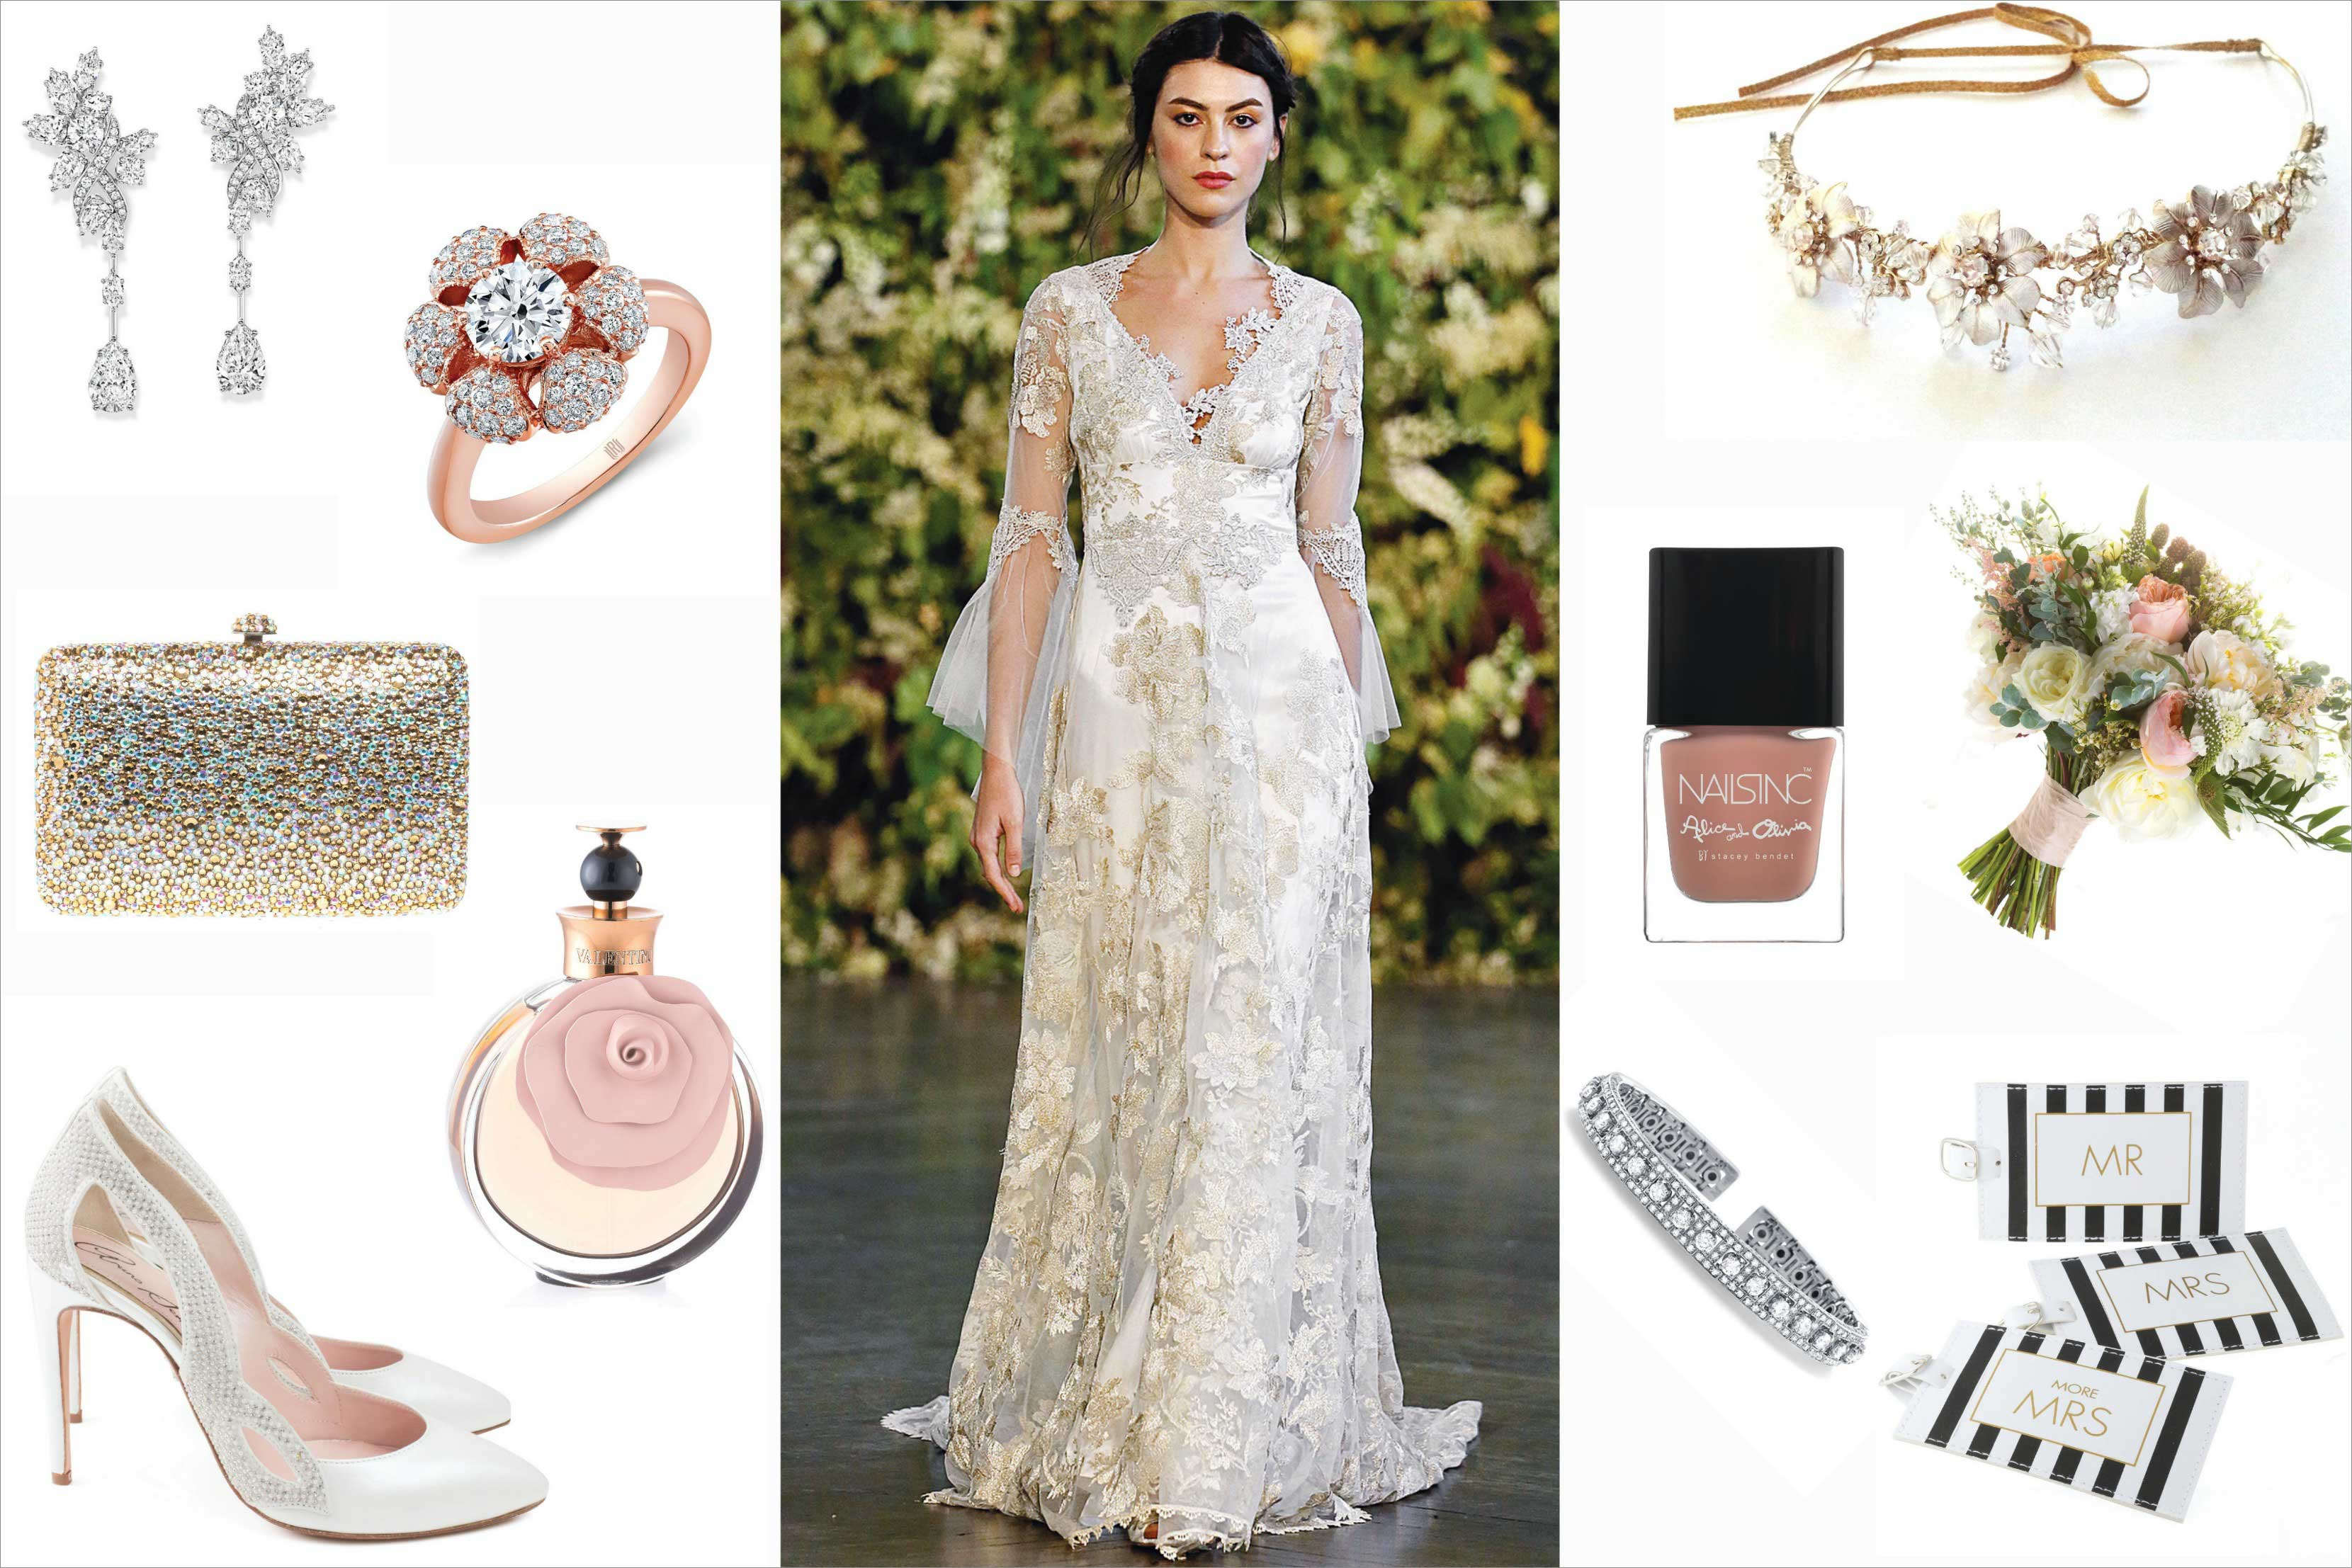 Celebrity wedding style nikki reed and ian somerhalder inside nikki reed bride inspiration junglespirit Images